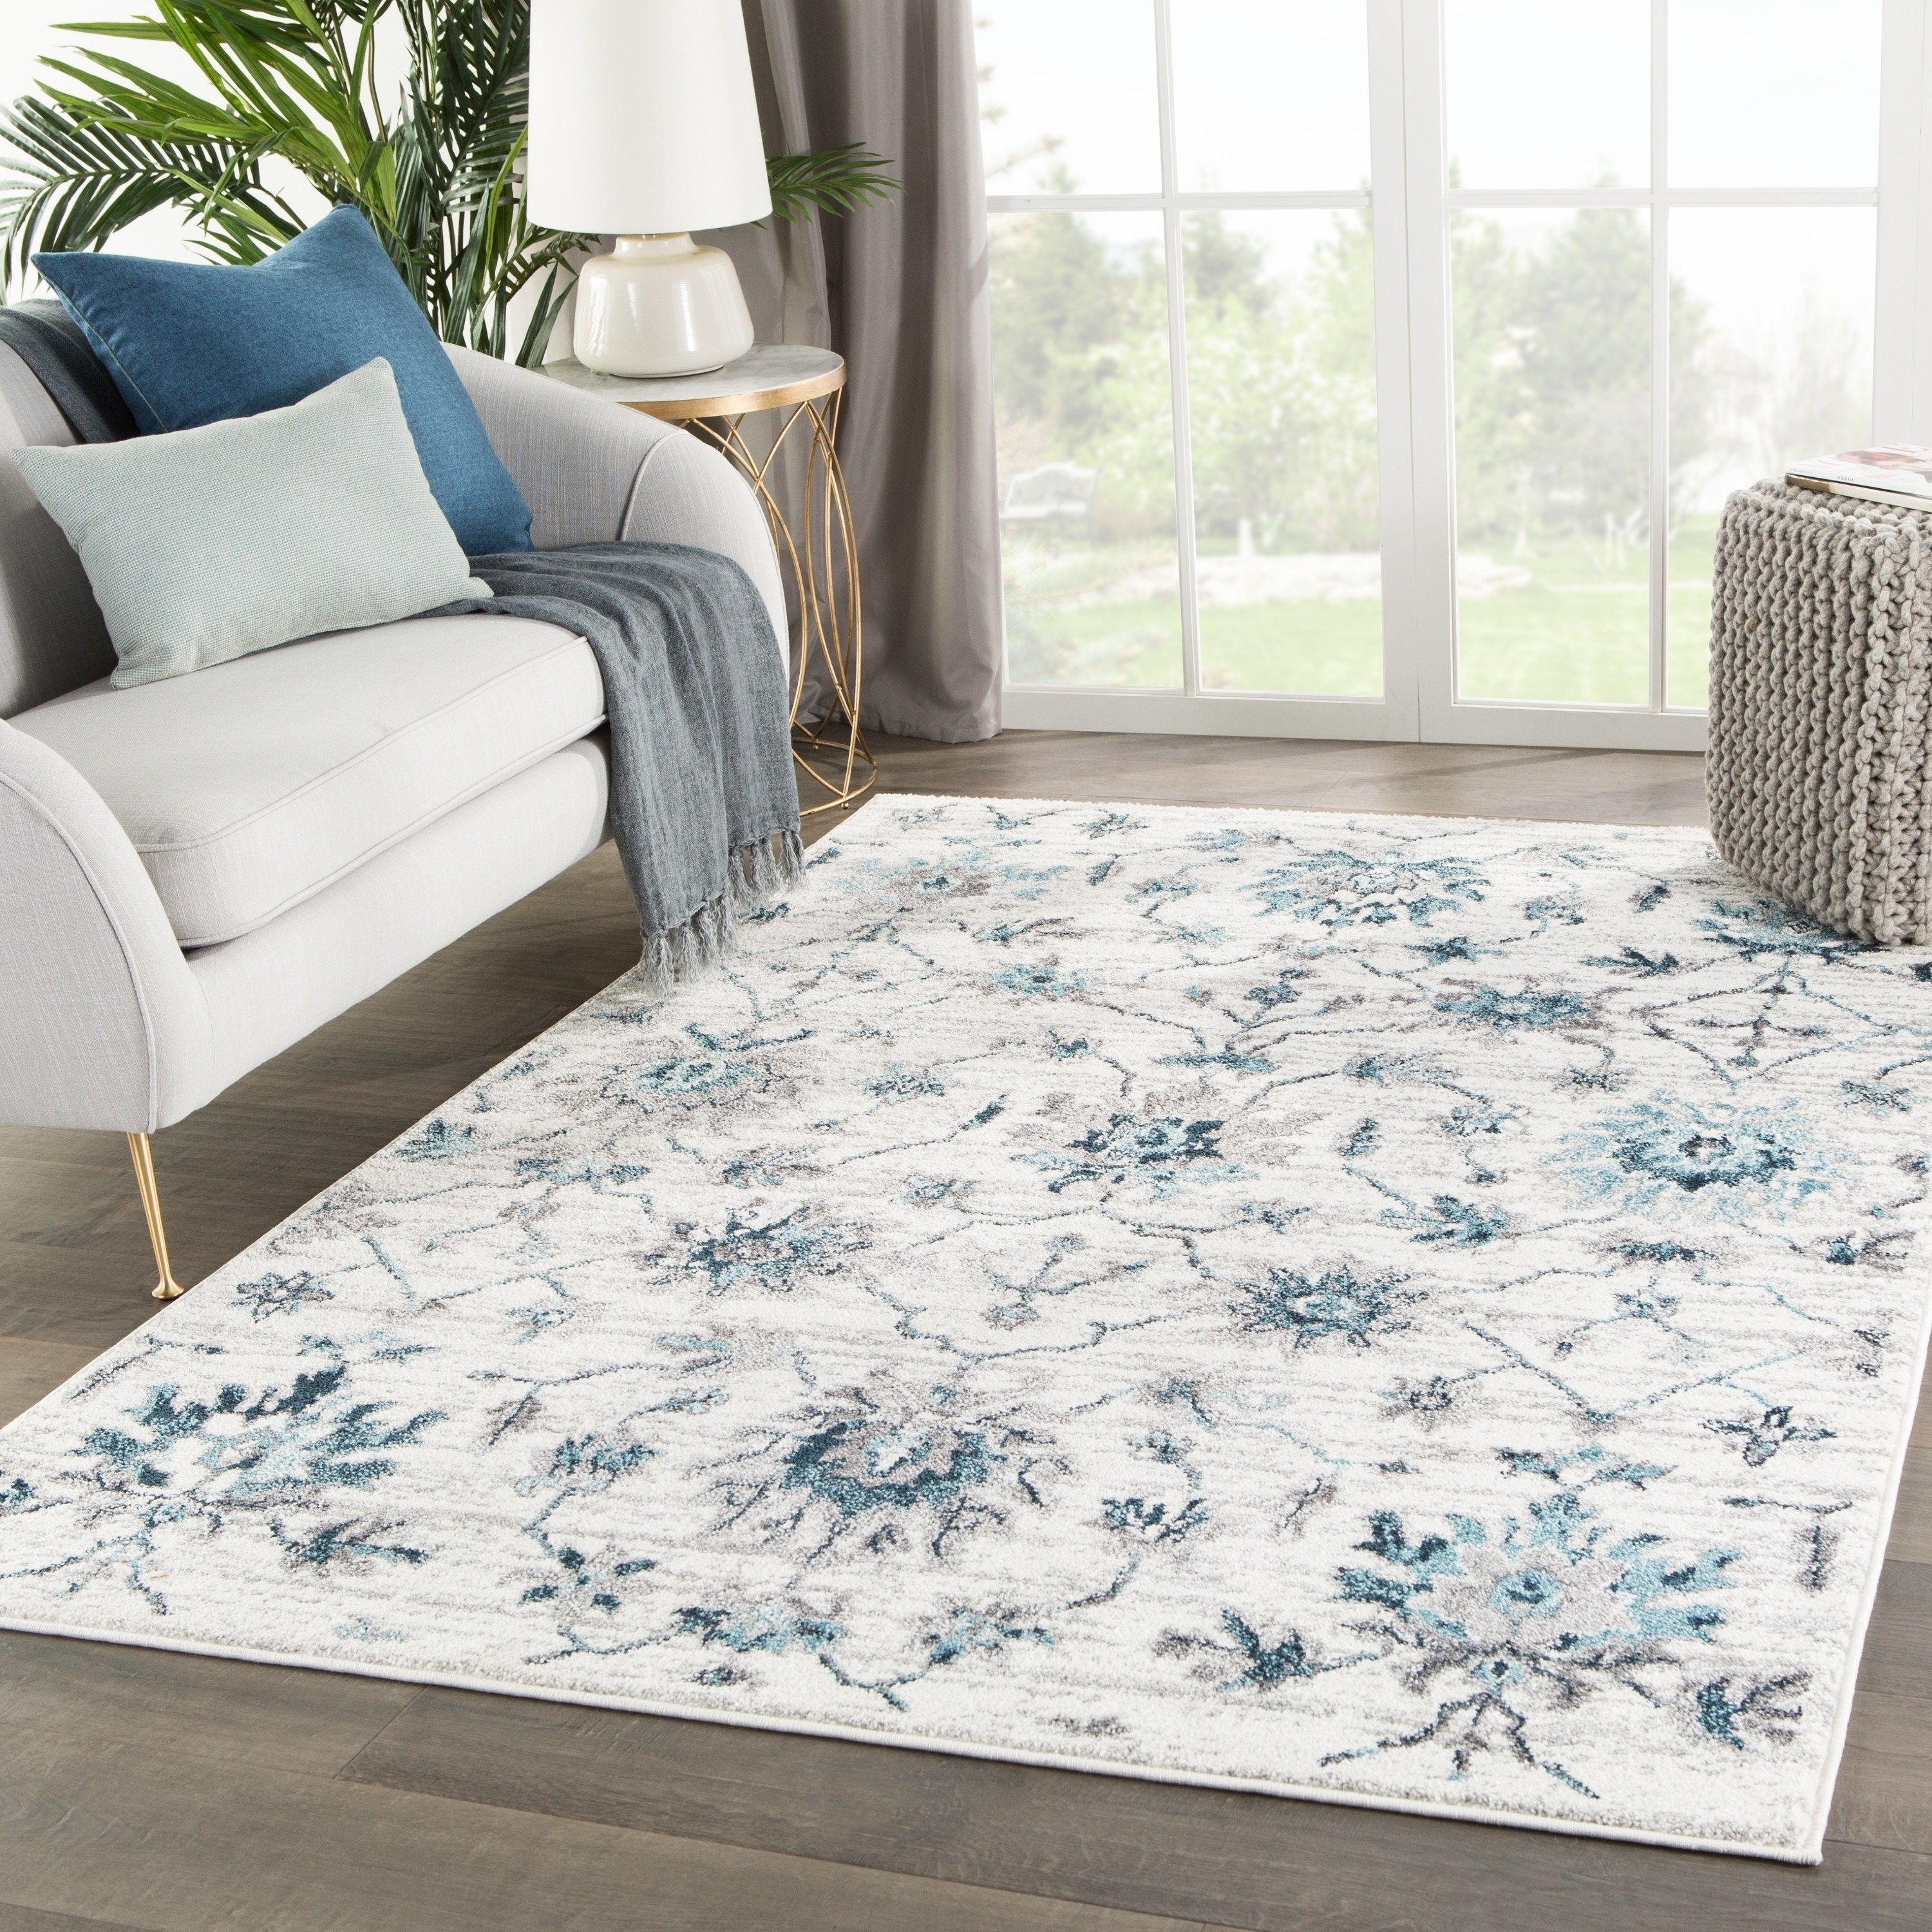 Alizeh Medallion White Teal Area Rug 8 10 X 12 8 10 X 12